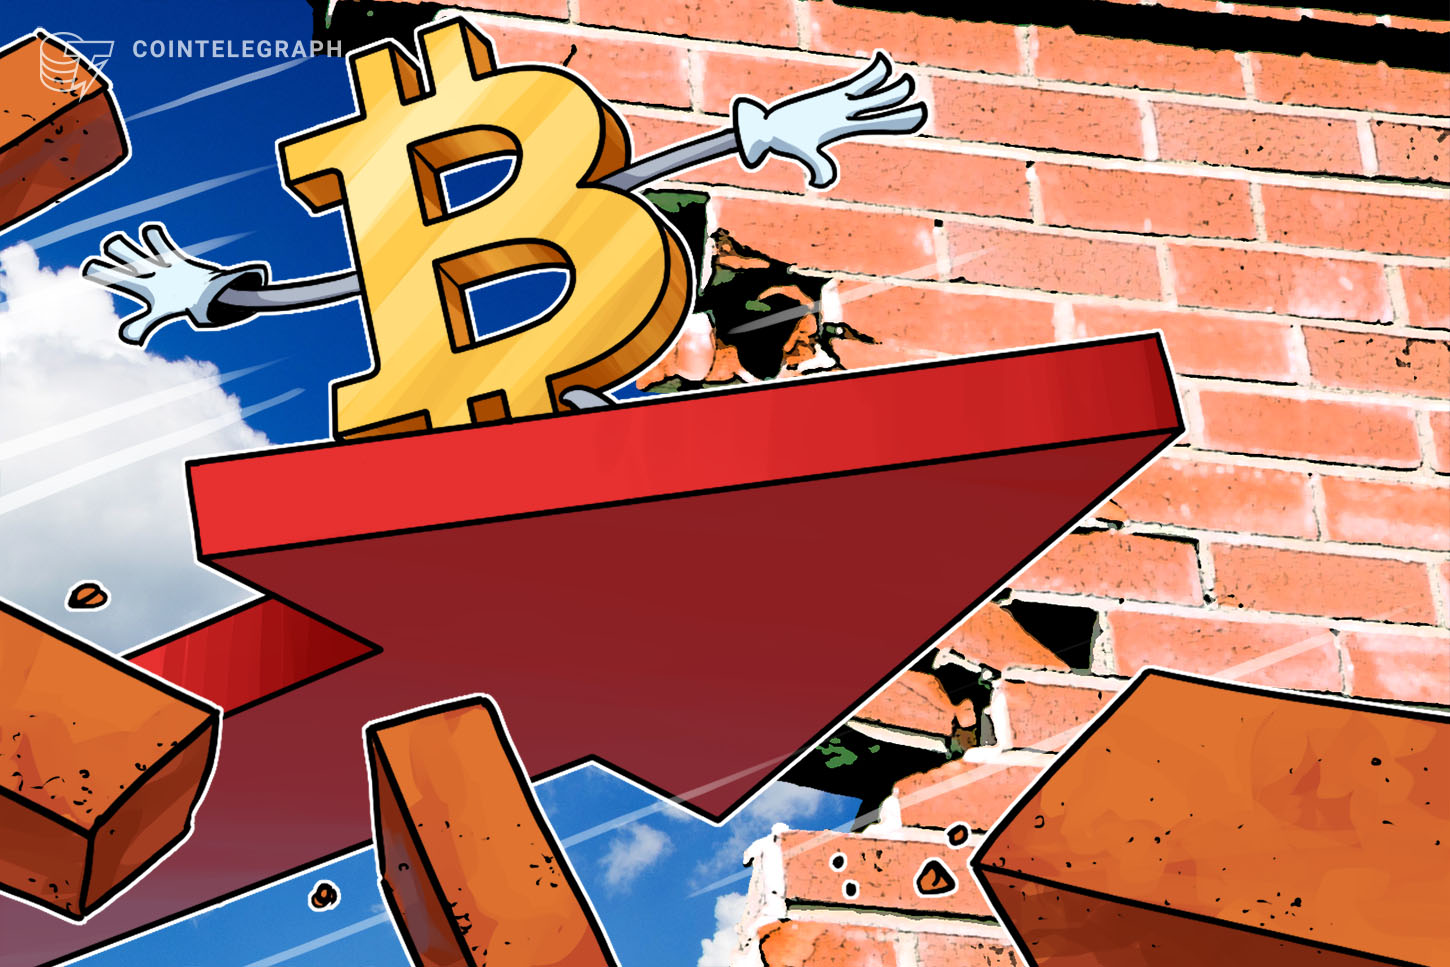 Bitcoin Price Bounce at $8.8K Support Shows Traders Keep Buying the Dip - Cointelegraph thumbnail